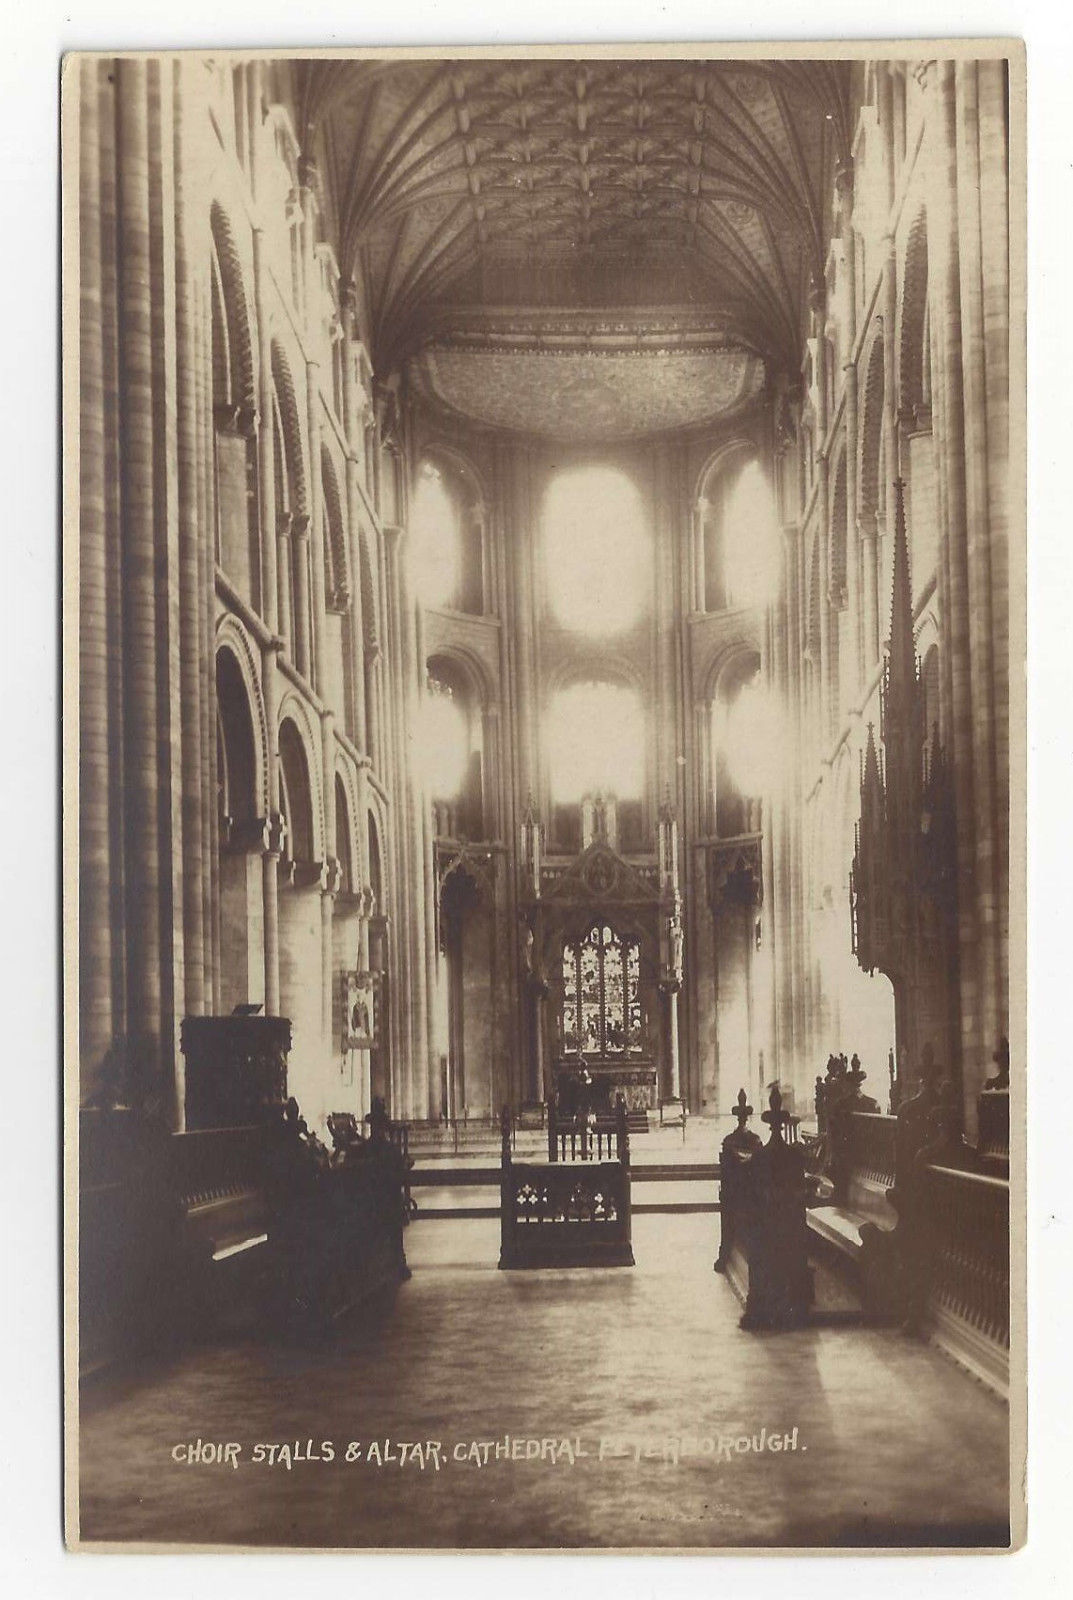 UK Peterborough Cathedral Choir Stalls & Altar Vtg Real Photo Postcard RP